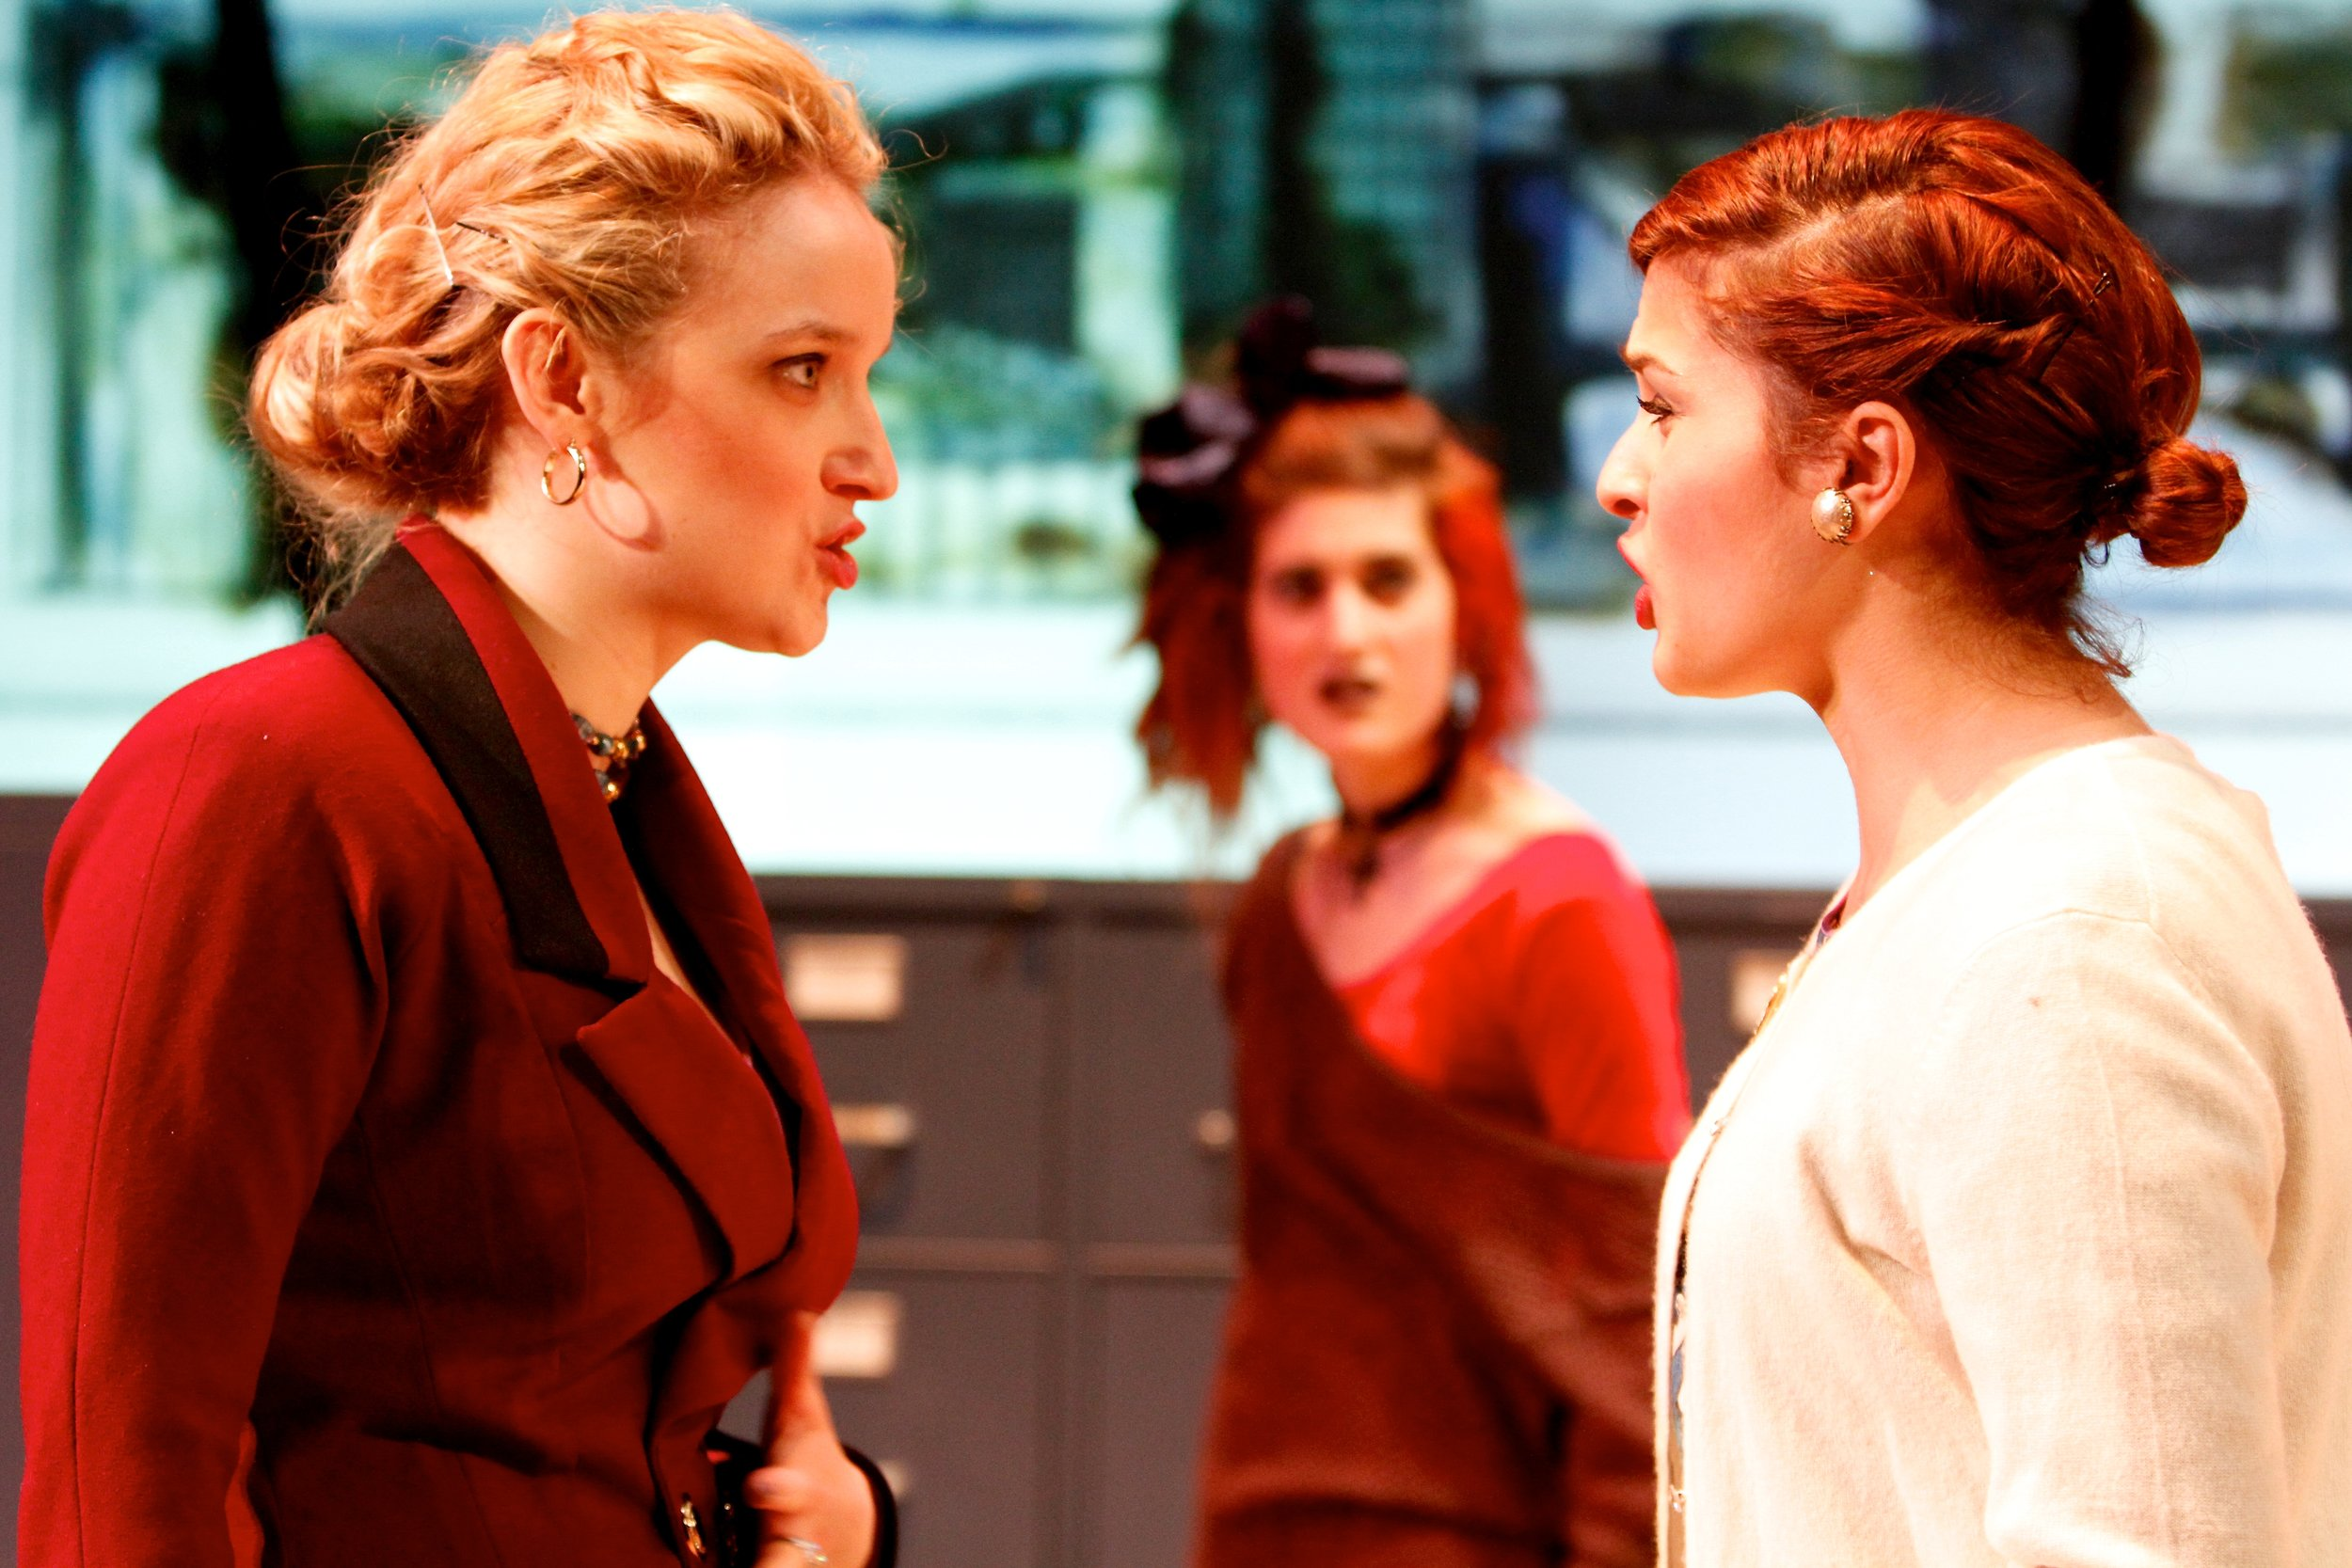 Mary Ann Pianka (as Marlene), Jenna Fields (as Angie) and Chessie Santoro (as Mrs. Kidd) in 'Top Girls.'Photo: Michael Davis